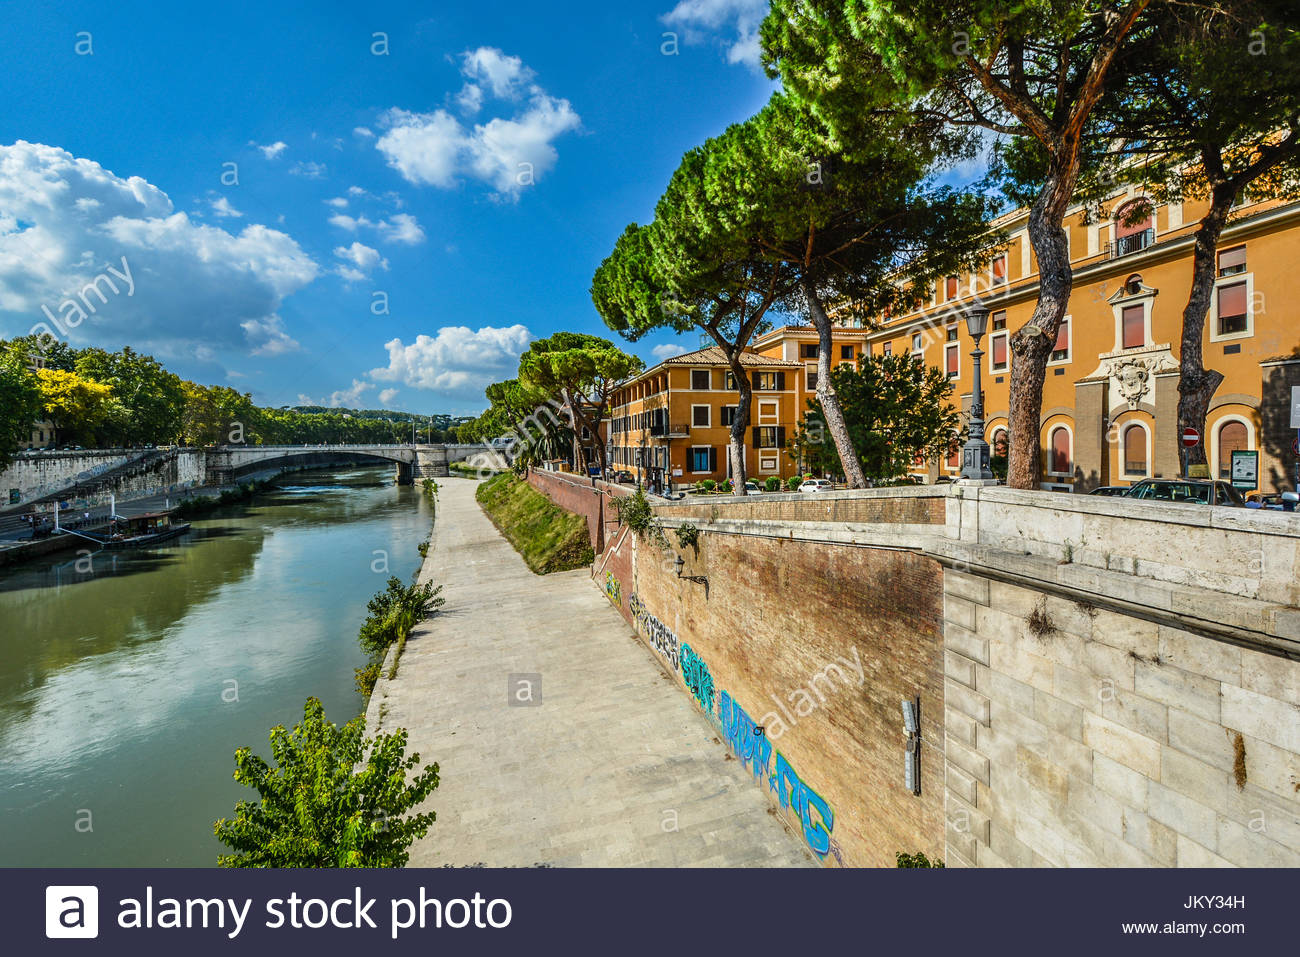 The banks of the Tiber river in Rome Italy on a warm summer afternoon. - Stock Image